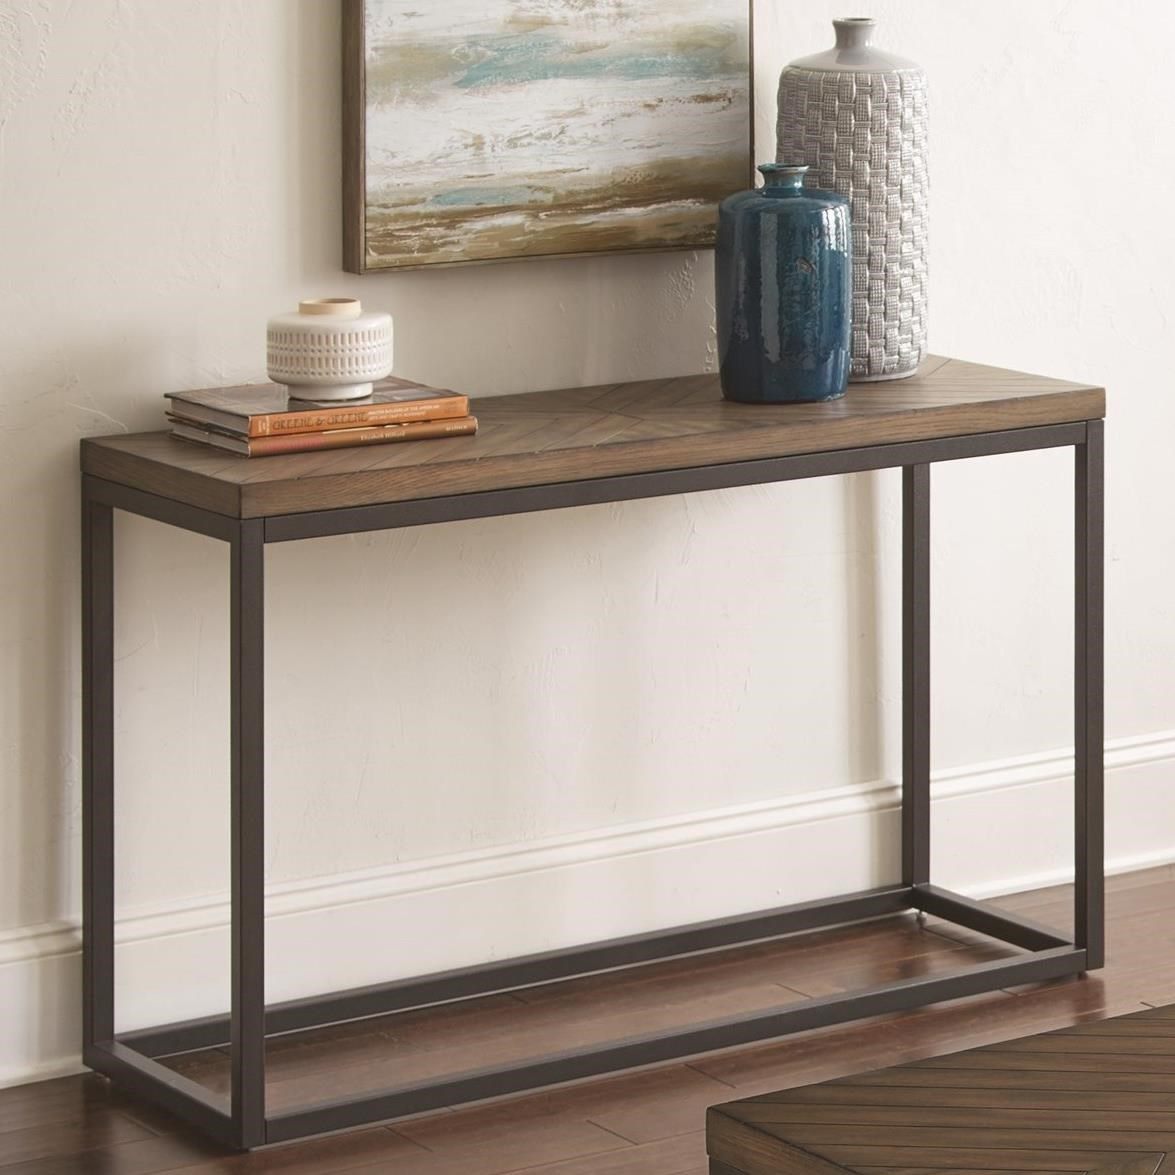 Aleka Sofa Table by Steve Silver at Walker's Furniture